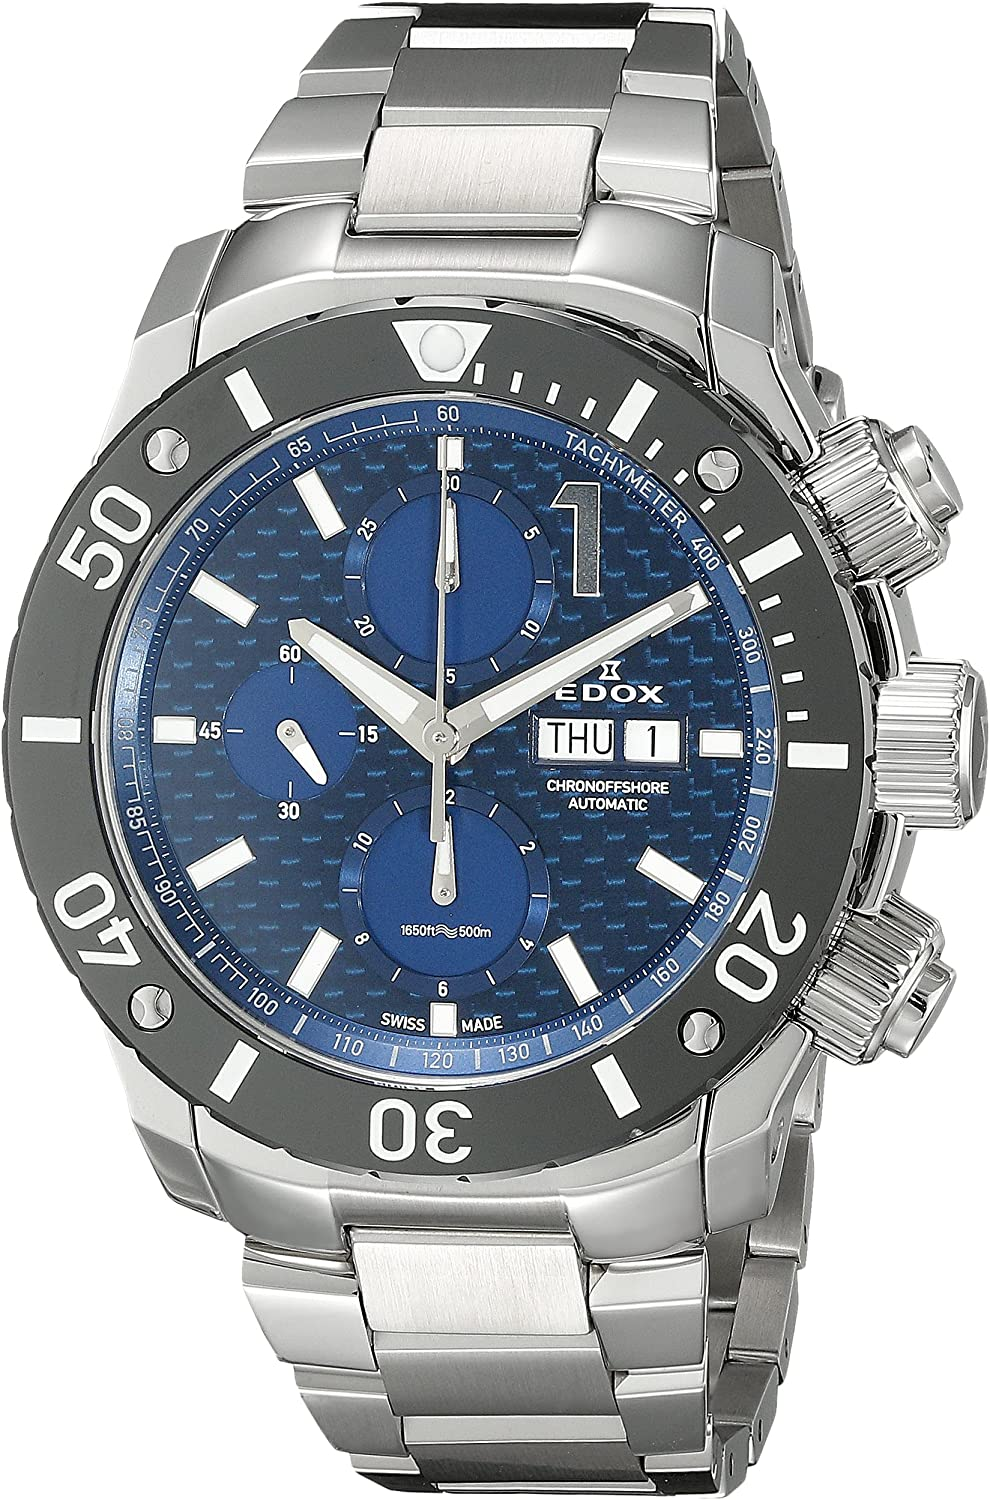 Edox Men s 01114 3M BUIN Chronoffshore Analog Display Swiss Automatic Silver Watch